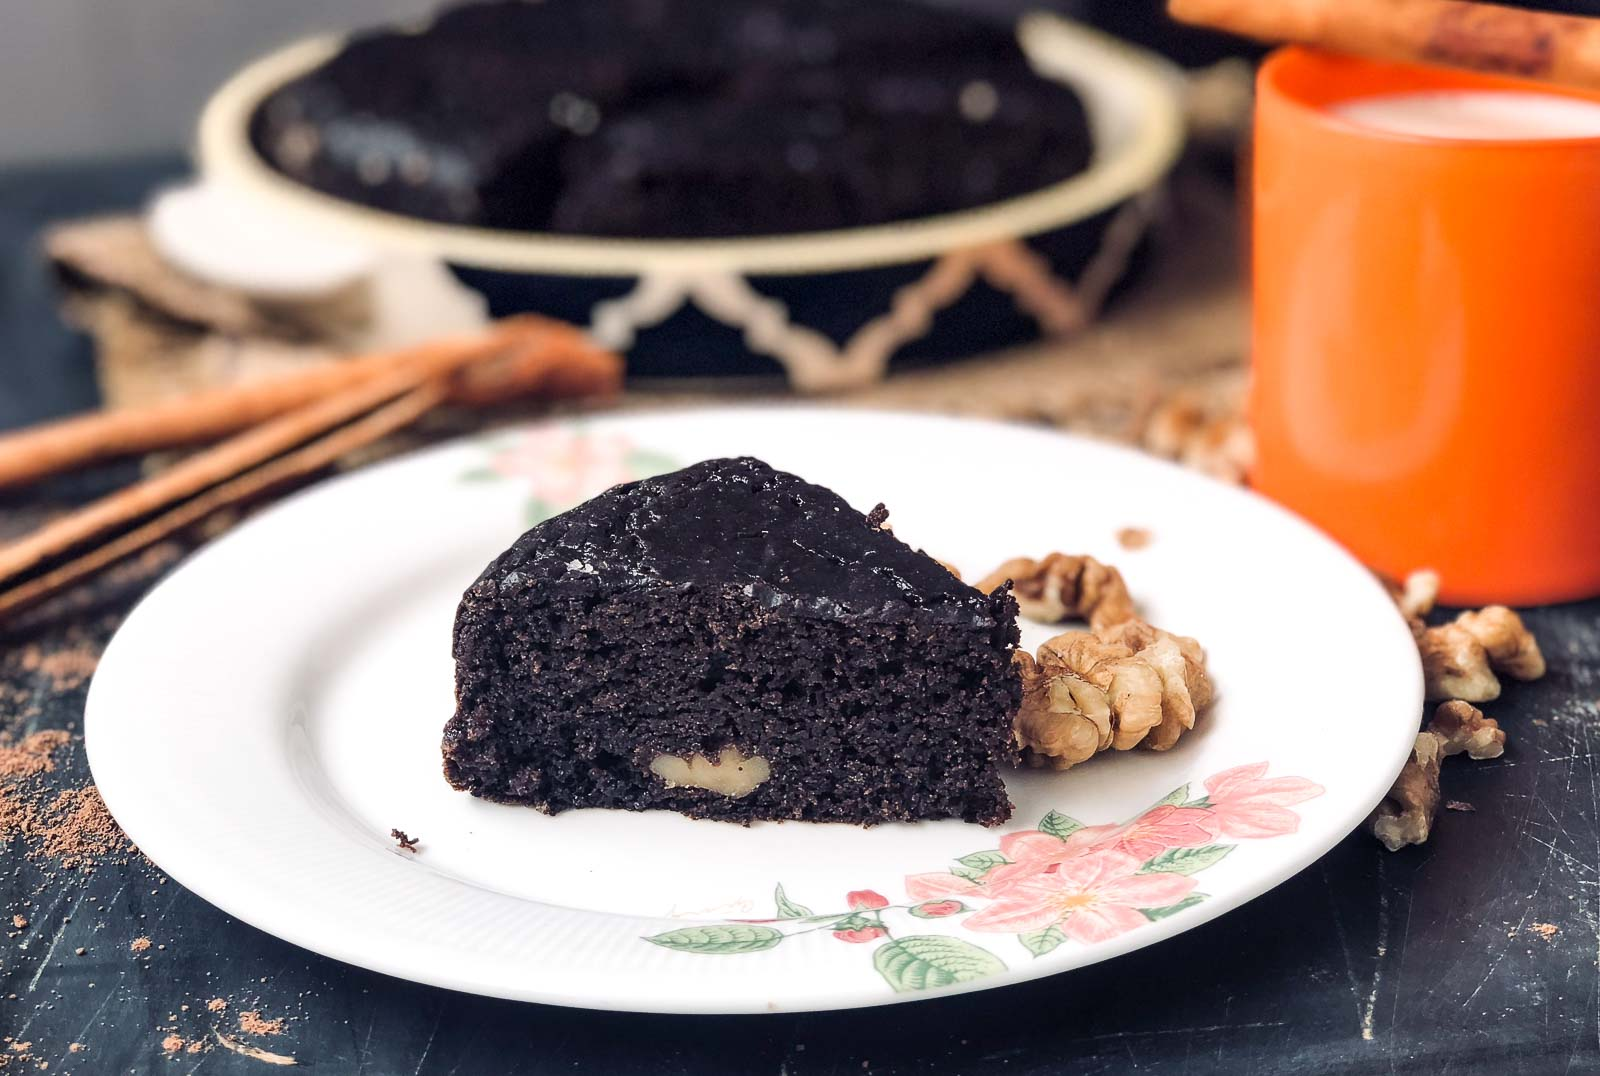 Rich Plum Cake Recipe In Pressure Cooker: Eggless Chocolate Ragi Cake